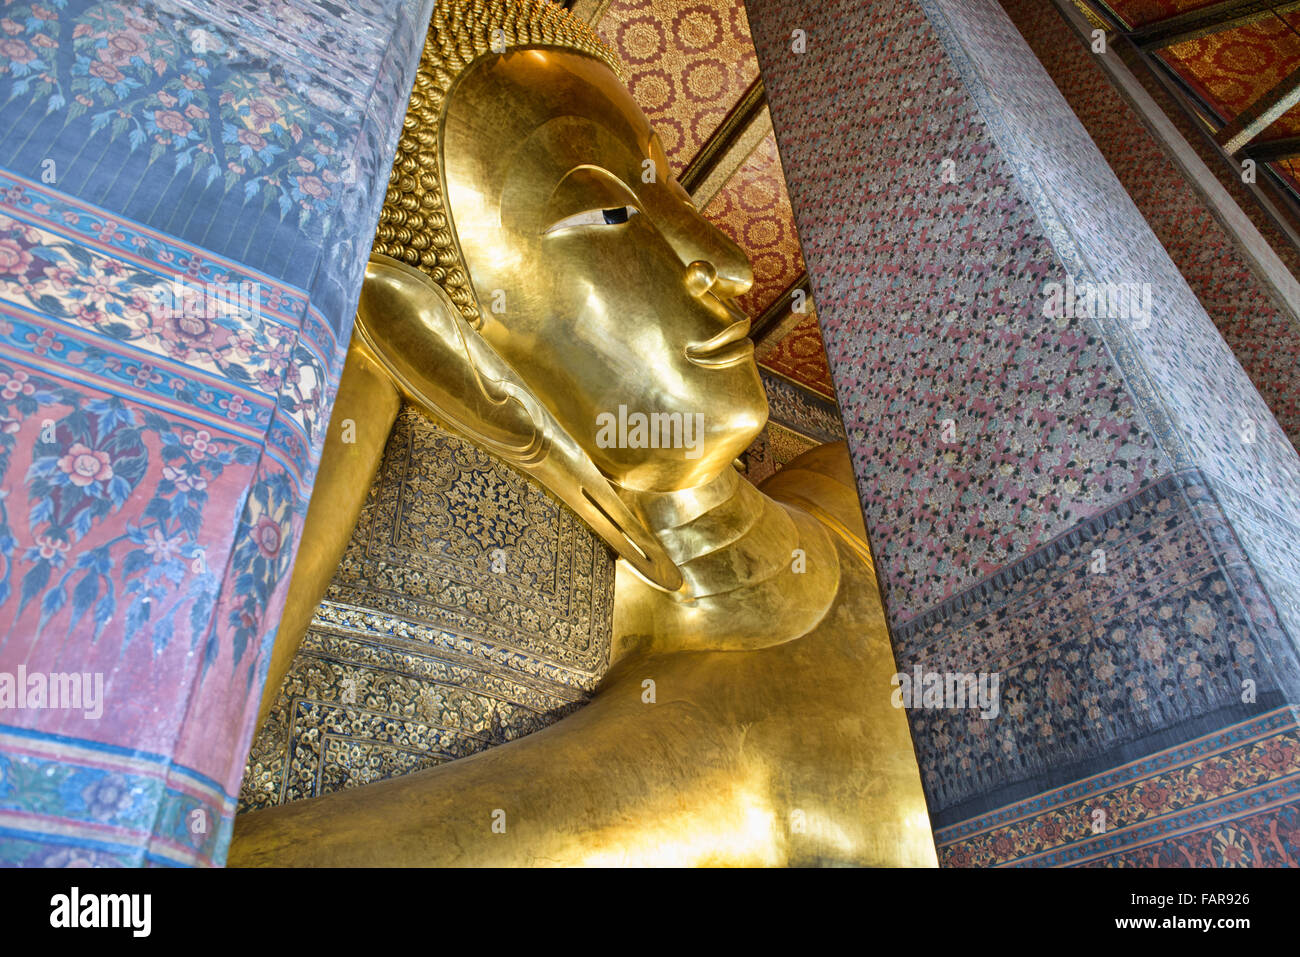 Giant reclining Buddha at Wat Pho in Bangkok, Thailand - Stock Image